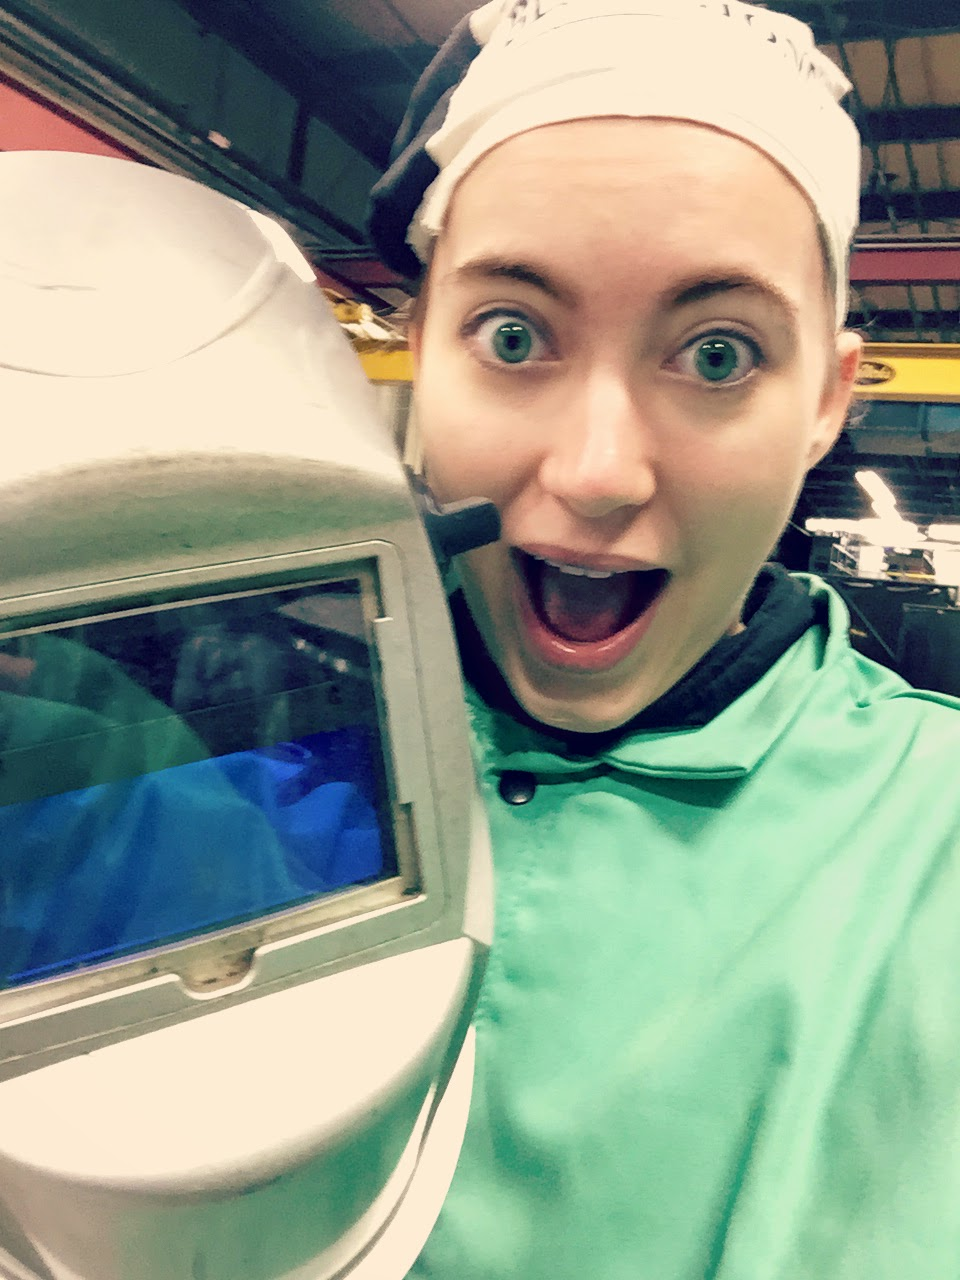 girl-with-welding-gear-on